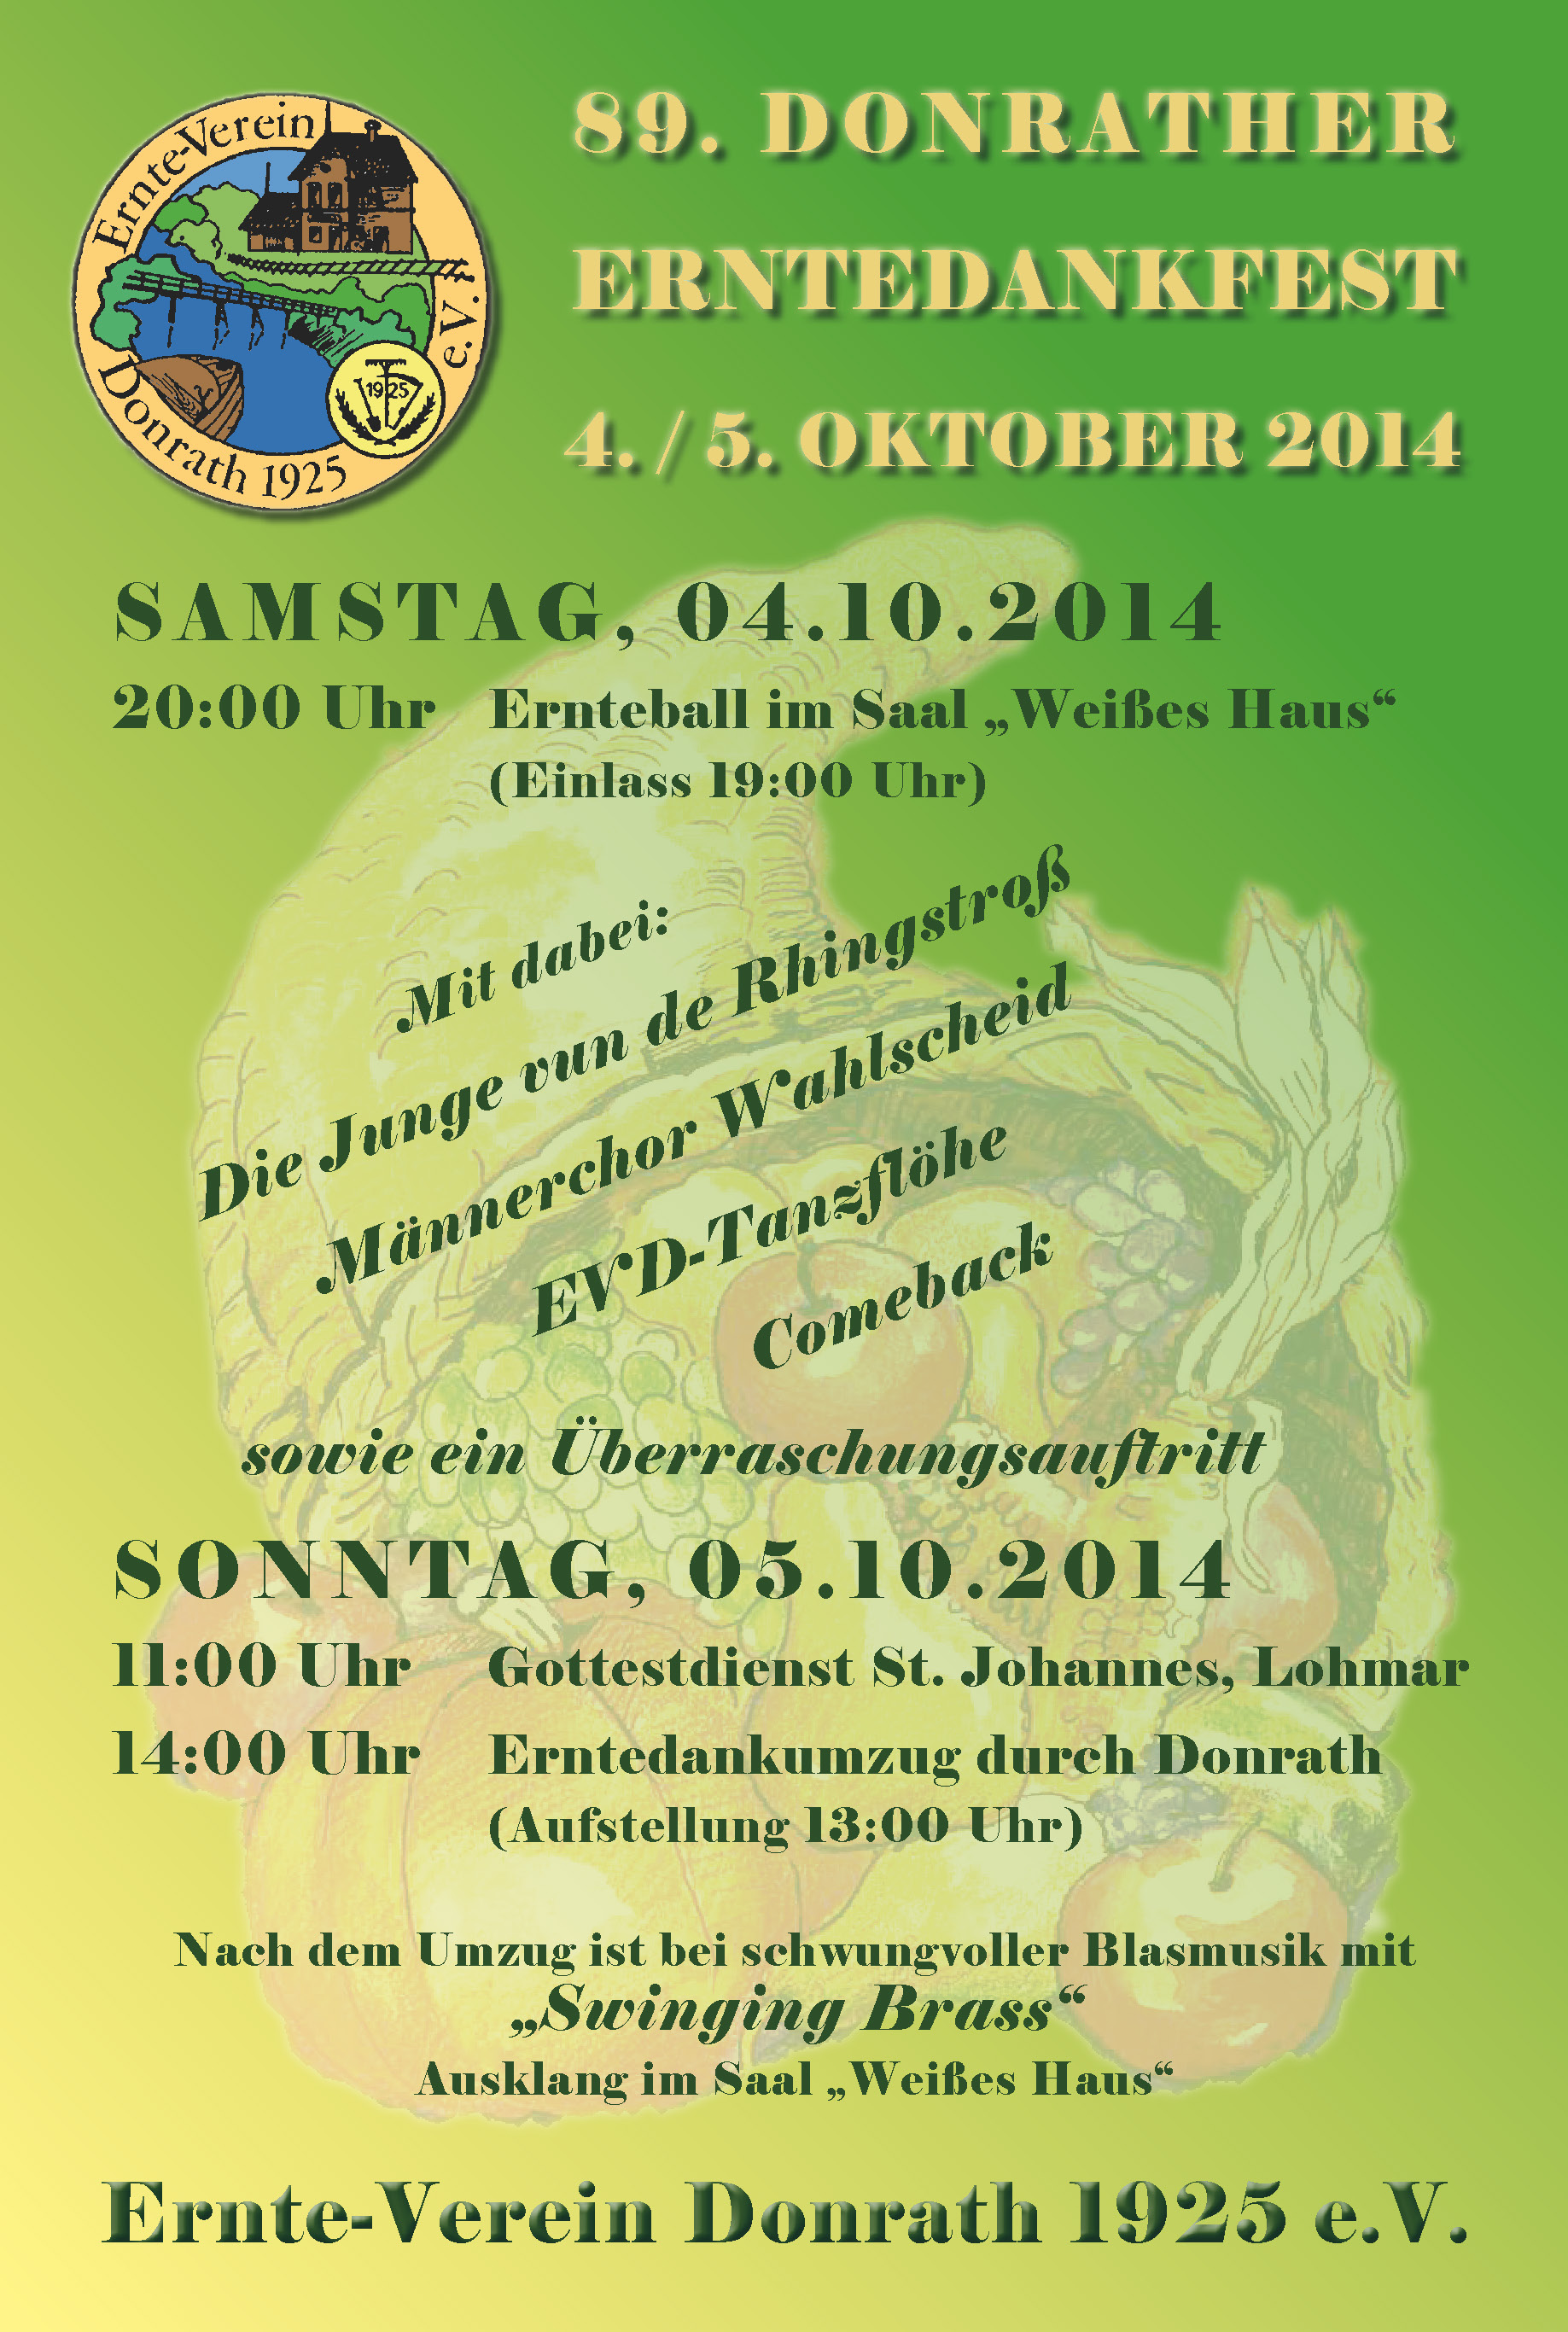 89. Erntefest in Donrath